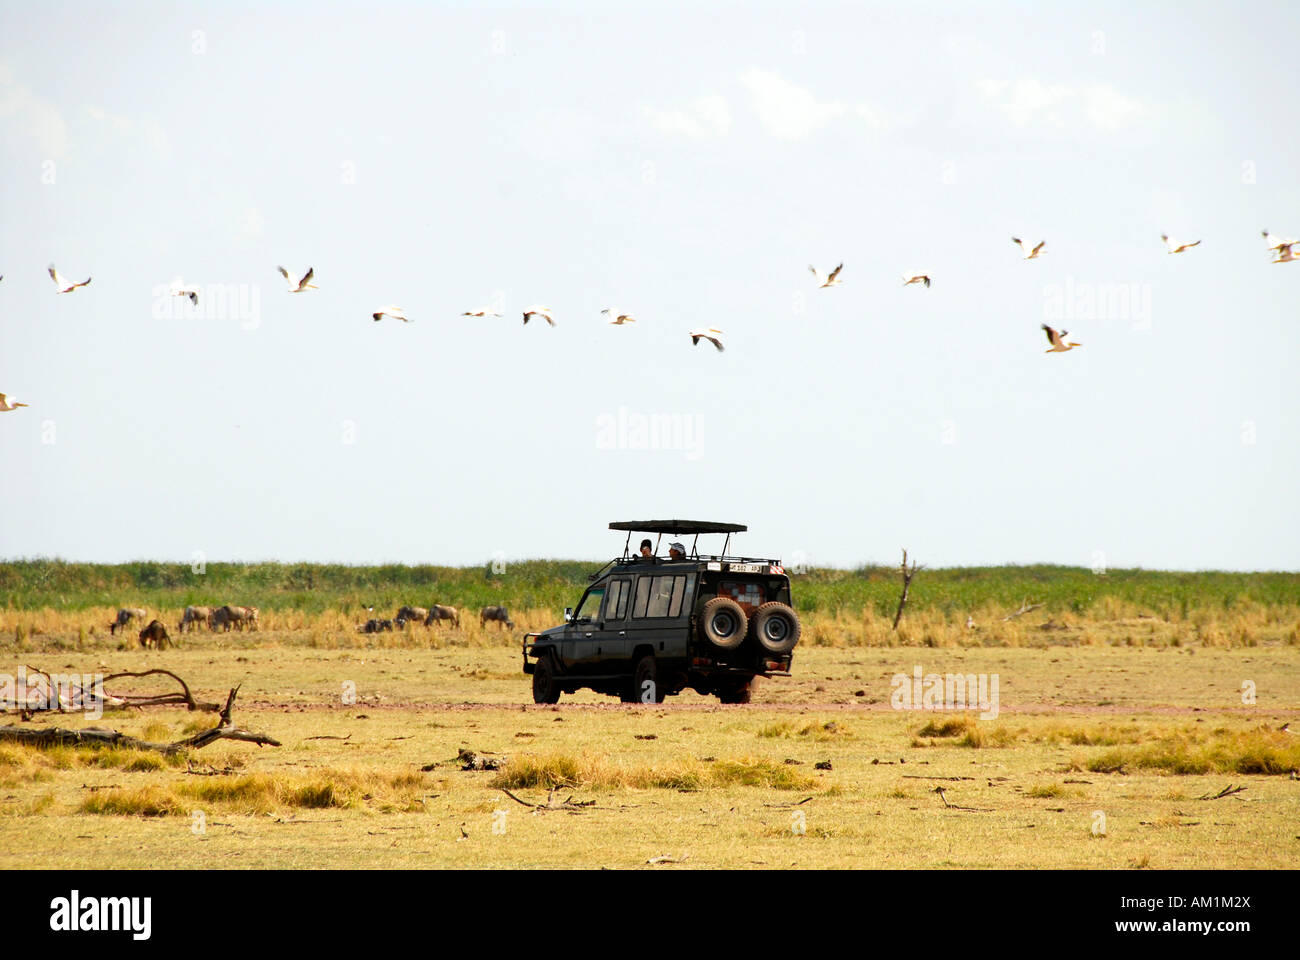 White Pelican (Pelecanus onocrotalus) flying over a safari Landcruiser Lake Manyara National Park Tanzania - Stock Image